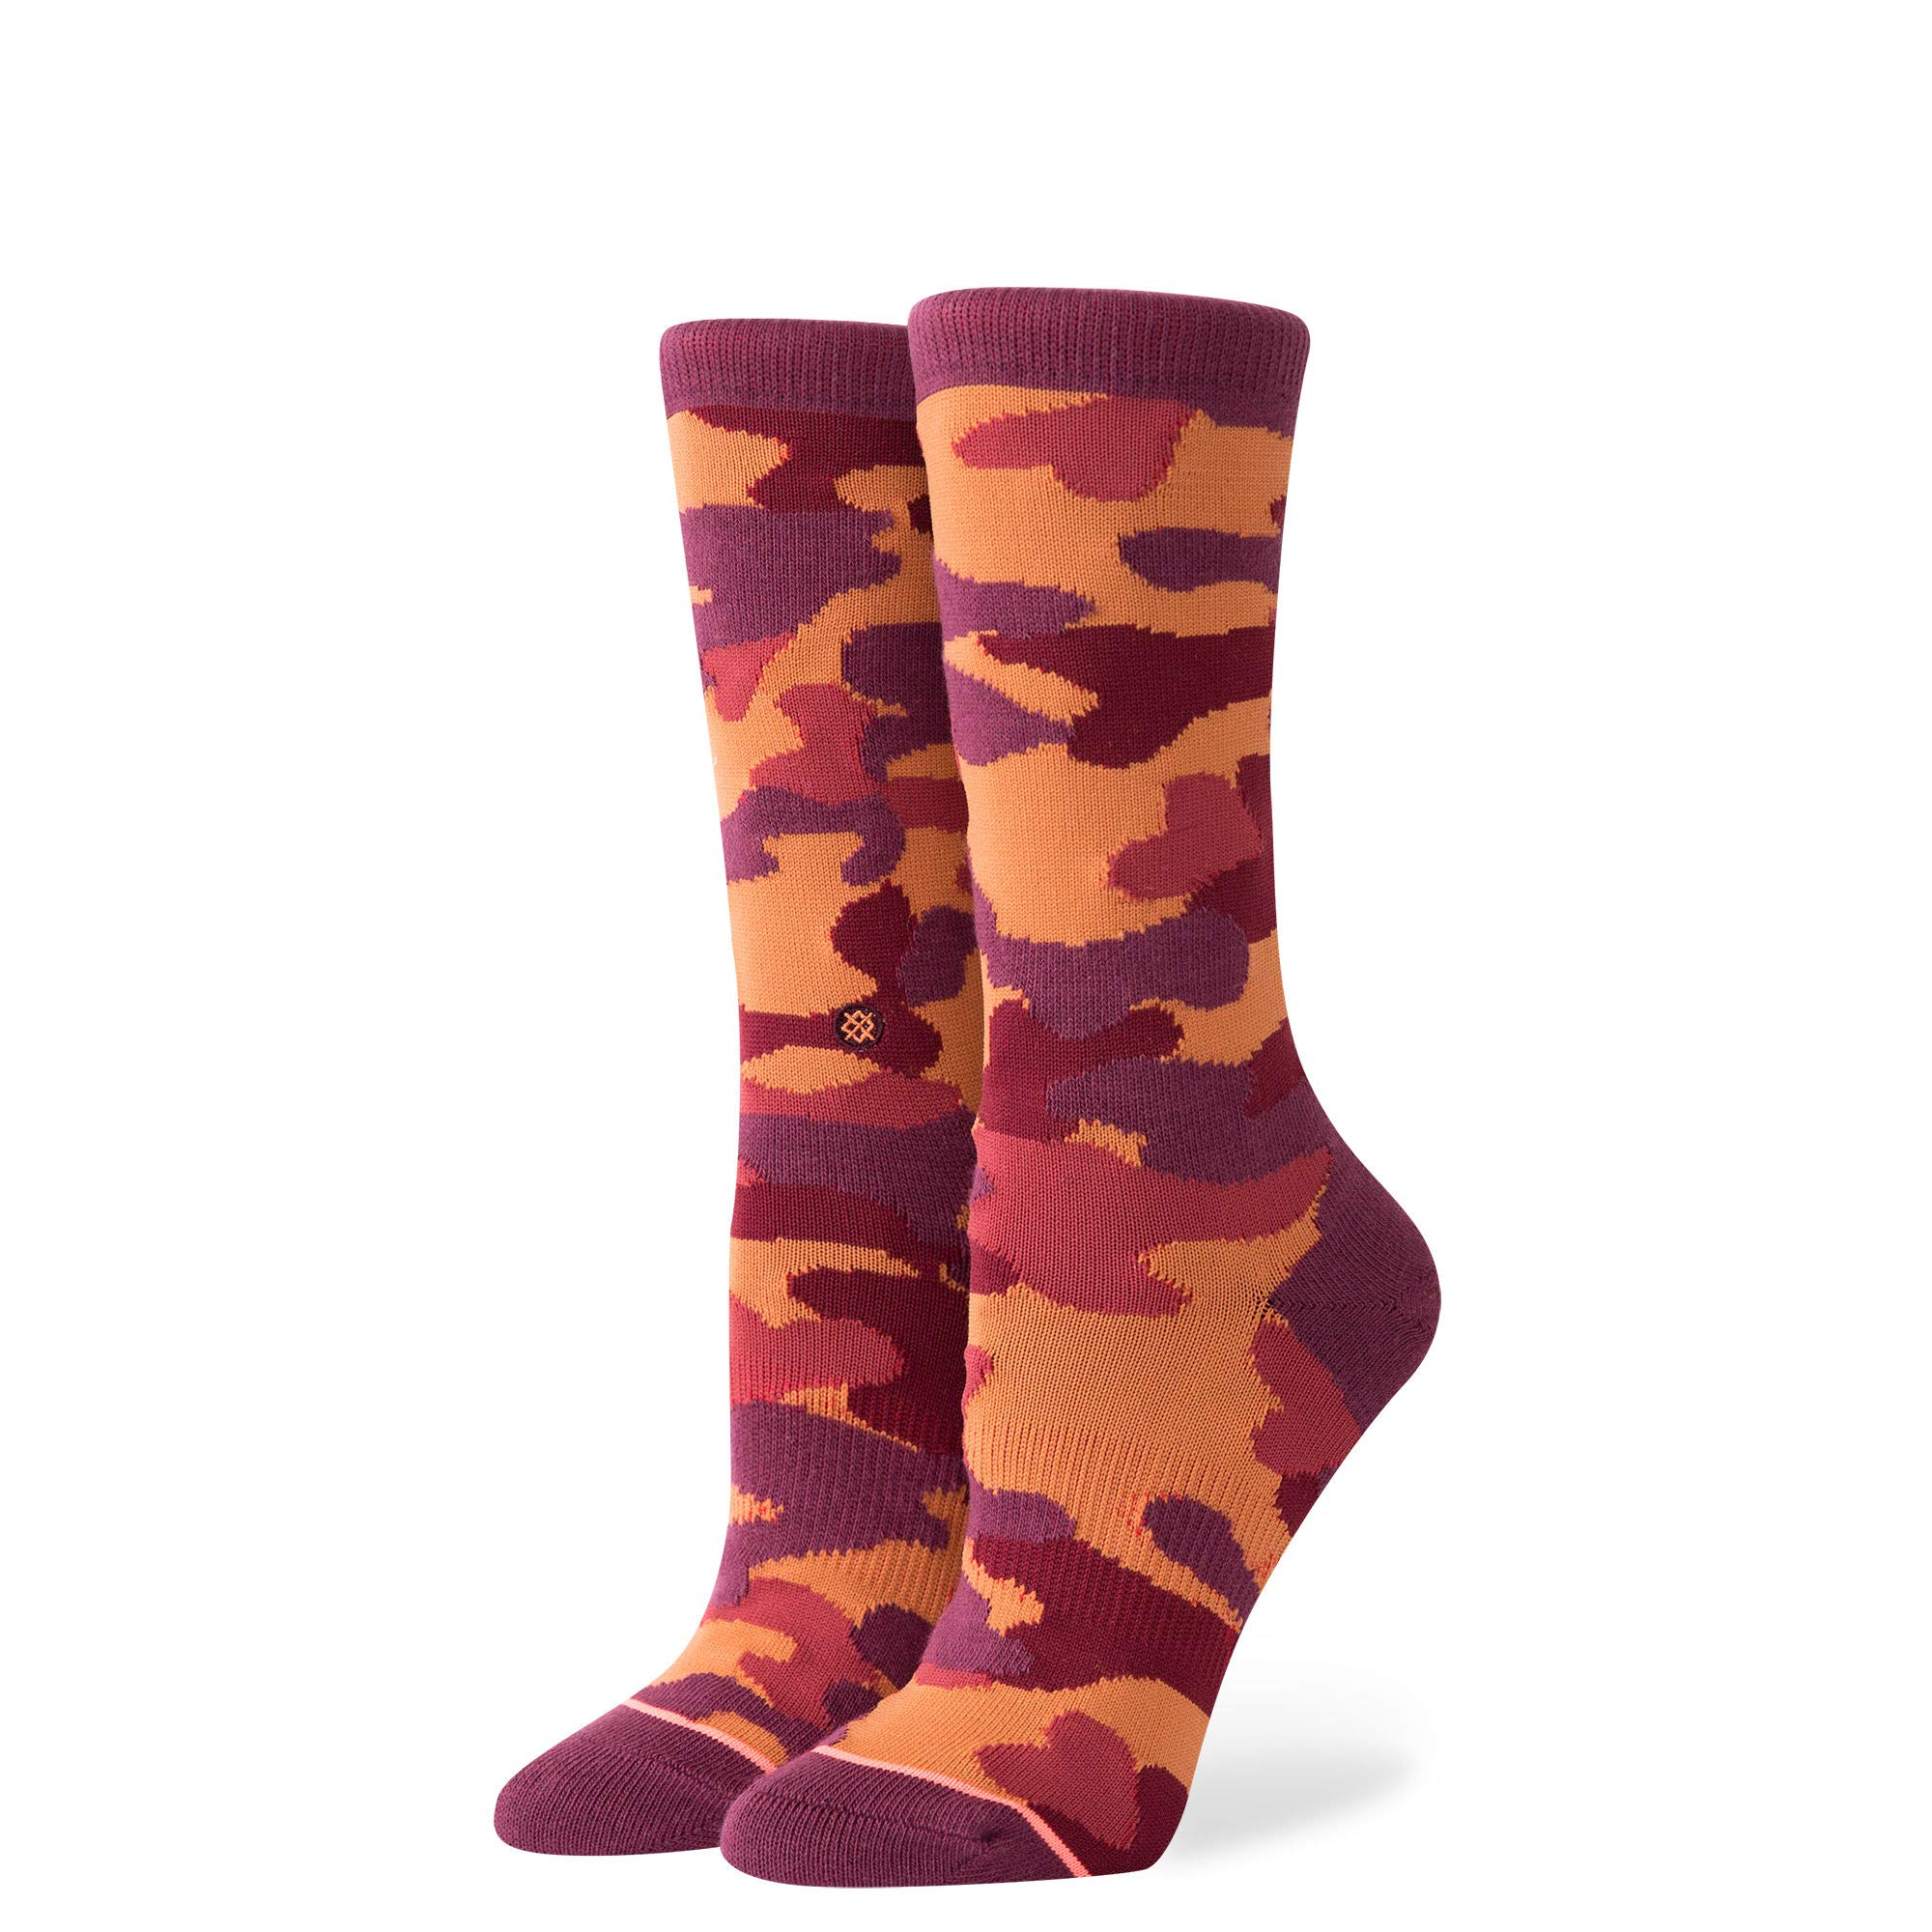 Stance W525C18EGY Women's Egyptian Beetle Sock, Tobacco - Large (11-13.5) by Stance